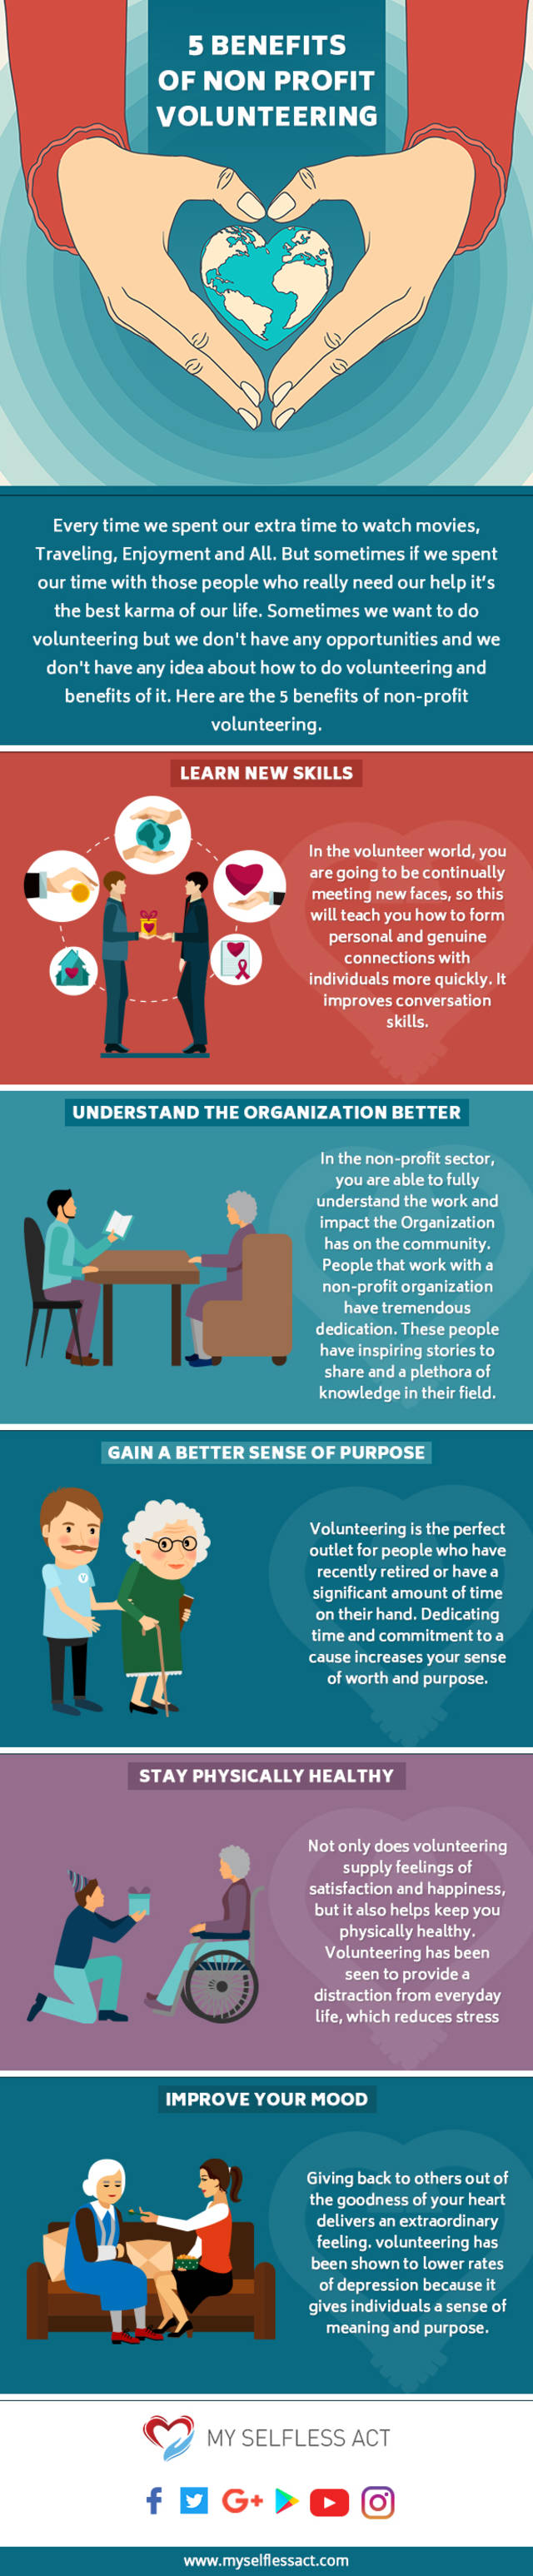 Benefits of non profit volunteering